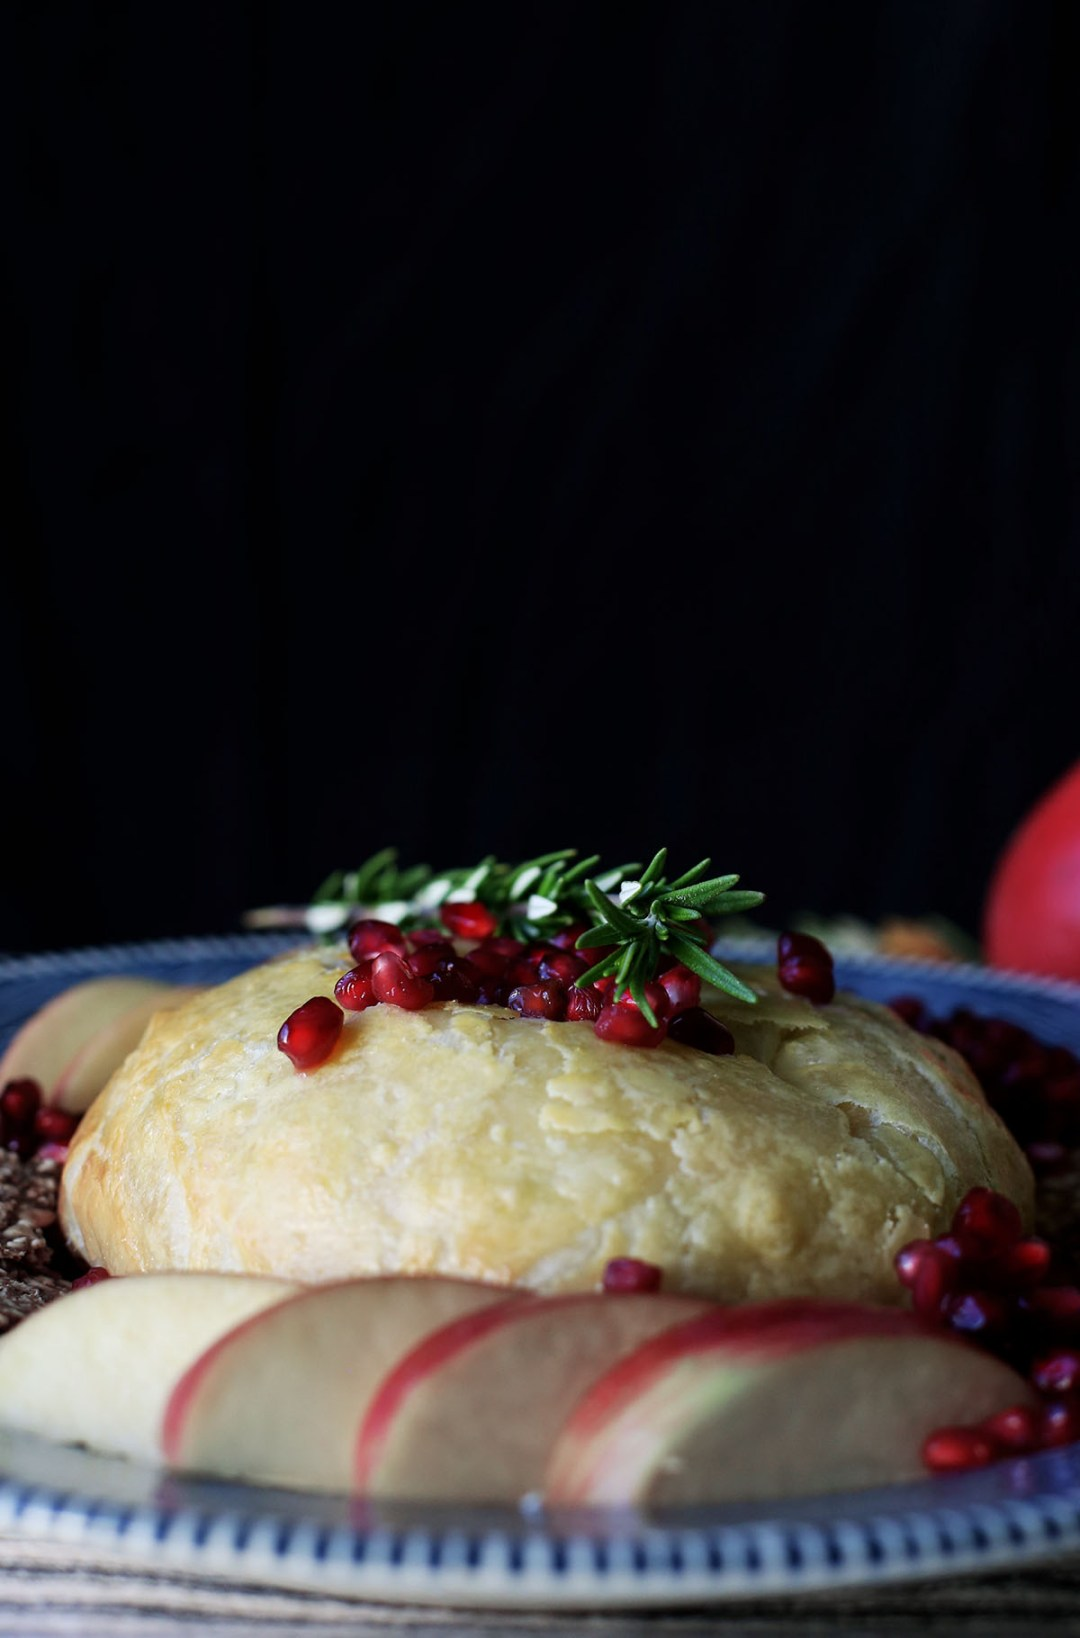 Rosemary Marmalade Pastry Wrapped Brie